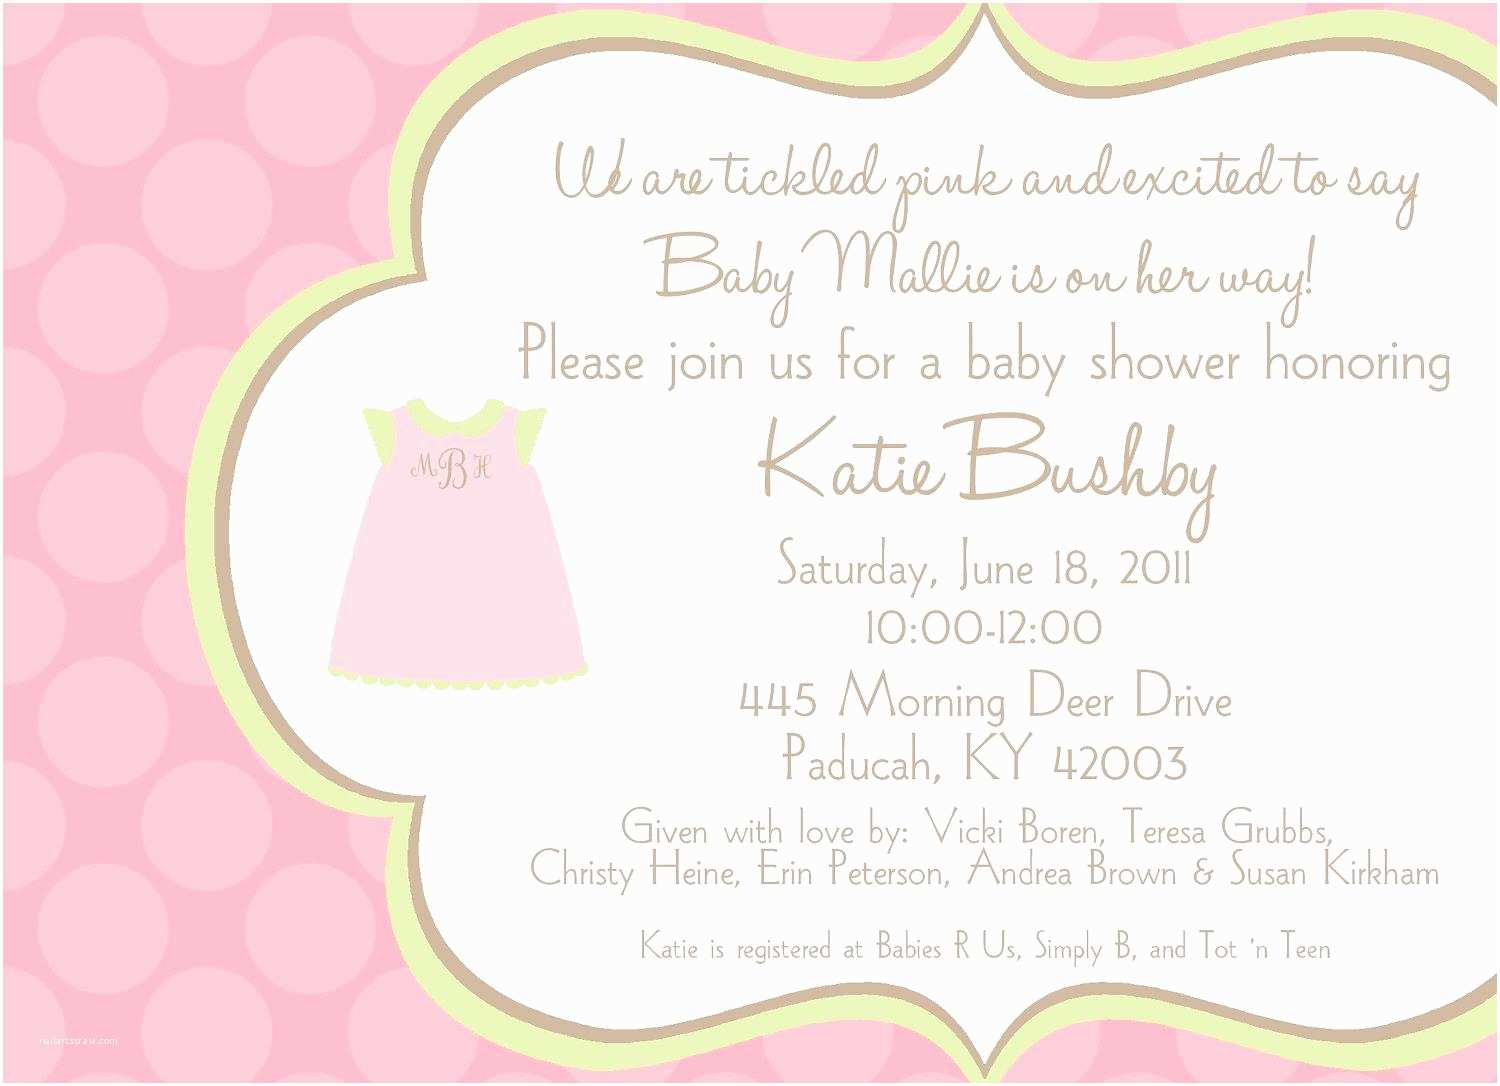 Baby Shower Invitation Ideas Baby Shower Invitation Ideas for Girls